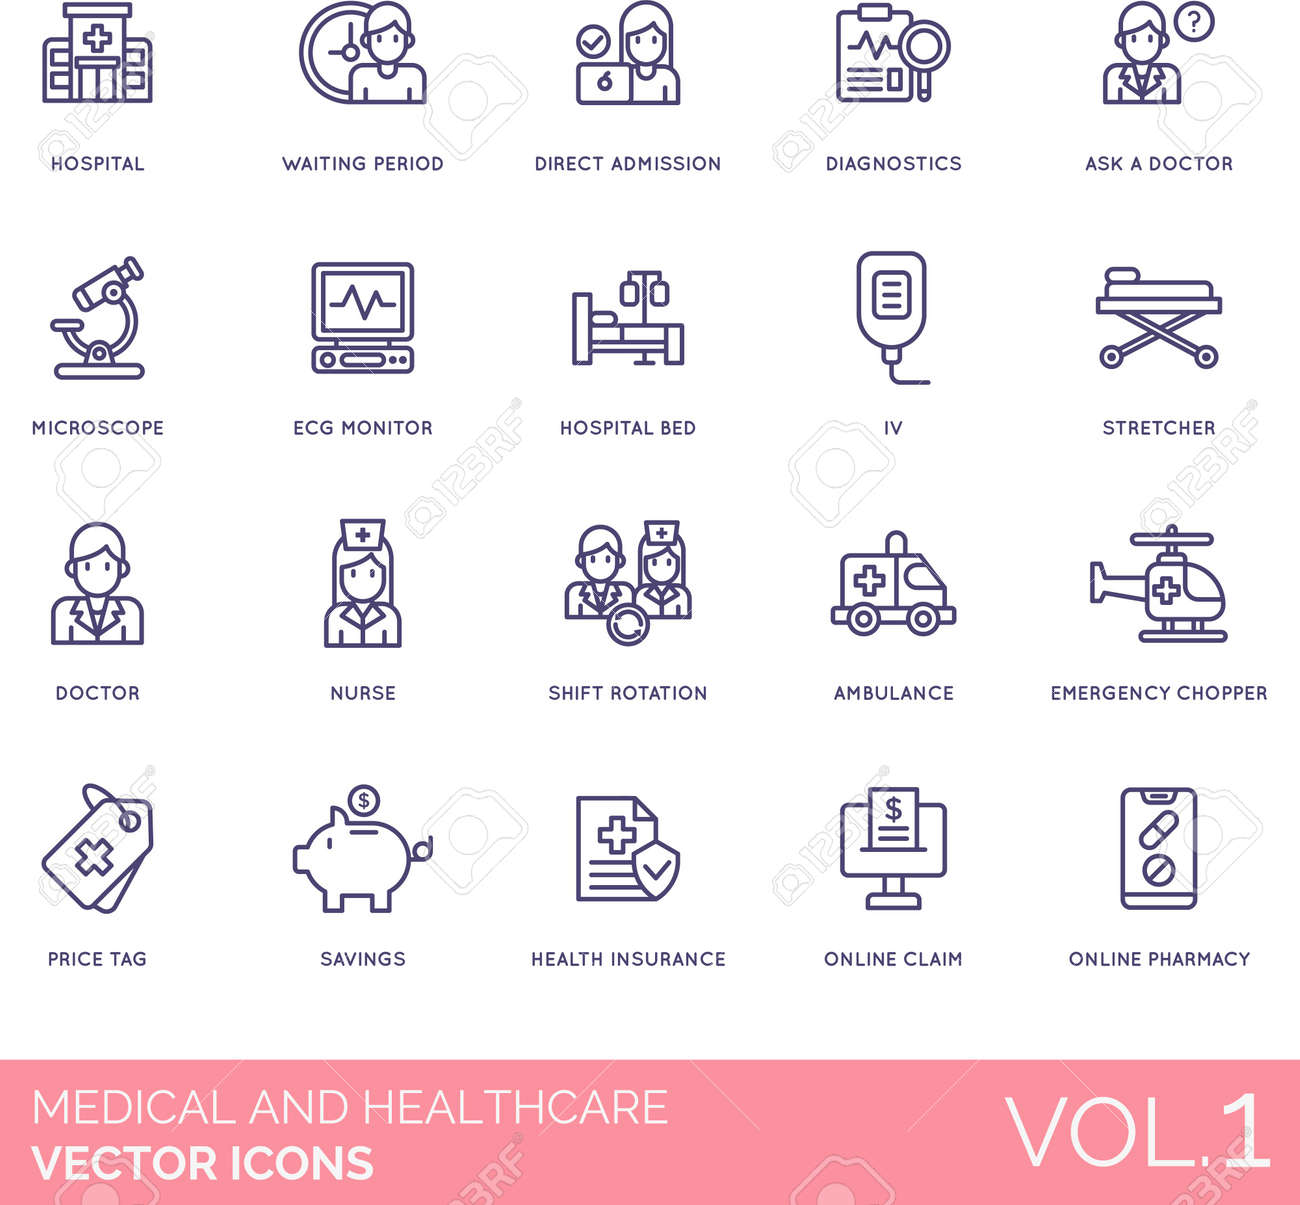 Medical and healthcare icons including hospital, waiting period, direct admission, diagnostics, ask a doctor, microscope, ECG monitor, bed, IV, stretcher, nurse, shift rotation, ambulance, emergency chopper, price tag, savings, health insurance, online claim, pharmacy. - 145615184